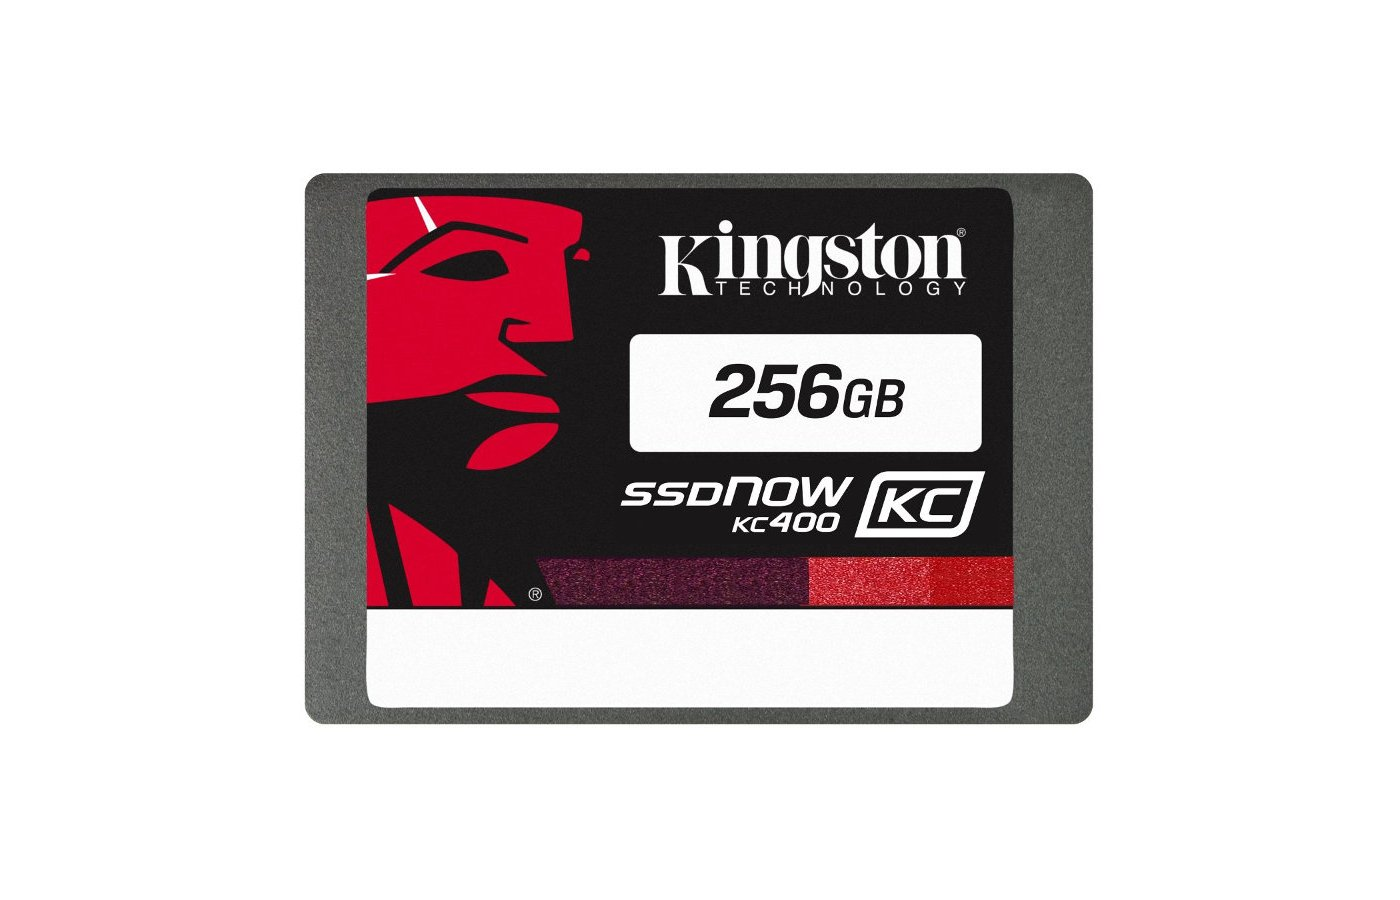 SSD жесткий диск Kingston 256GB SSDNow SKC400S37/256G SSD SATA 3 2.5 (7mm height)